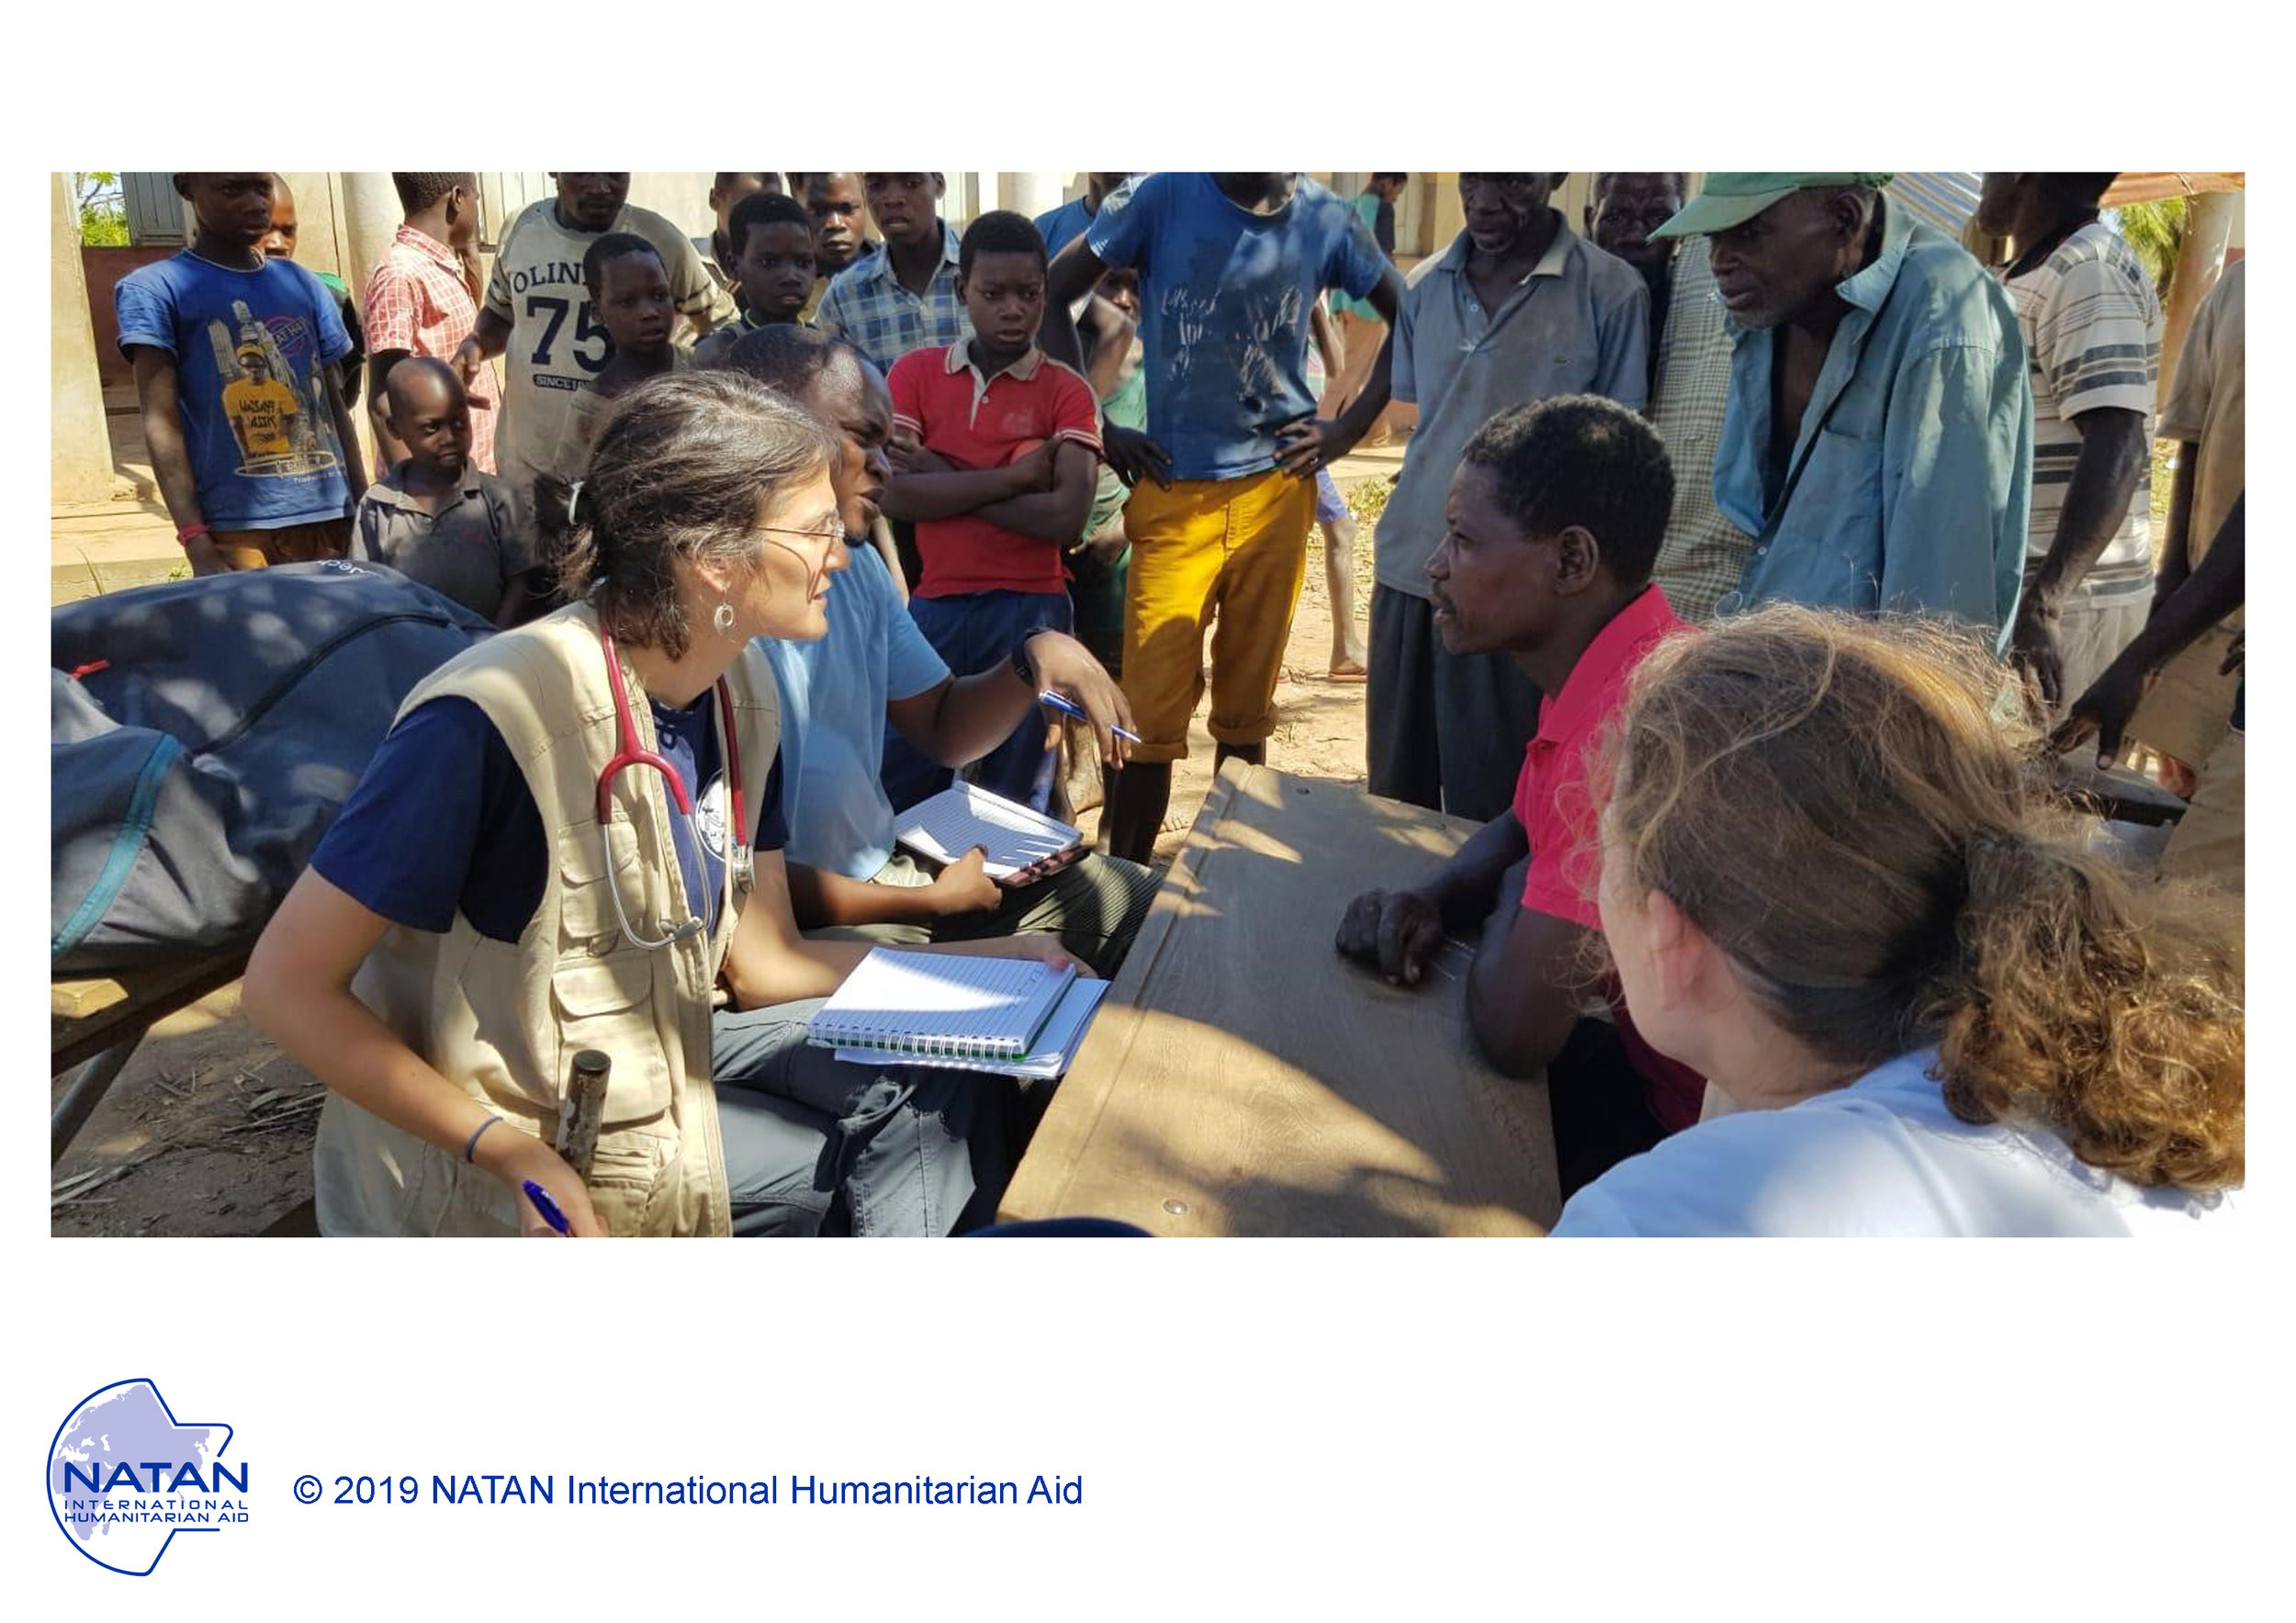 mozambique 2019: natan mds provide primary medical care and health assessments in outdoor field clinics in beira region of mozambique following cyclone idai